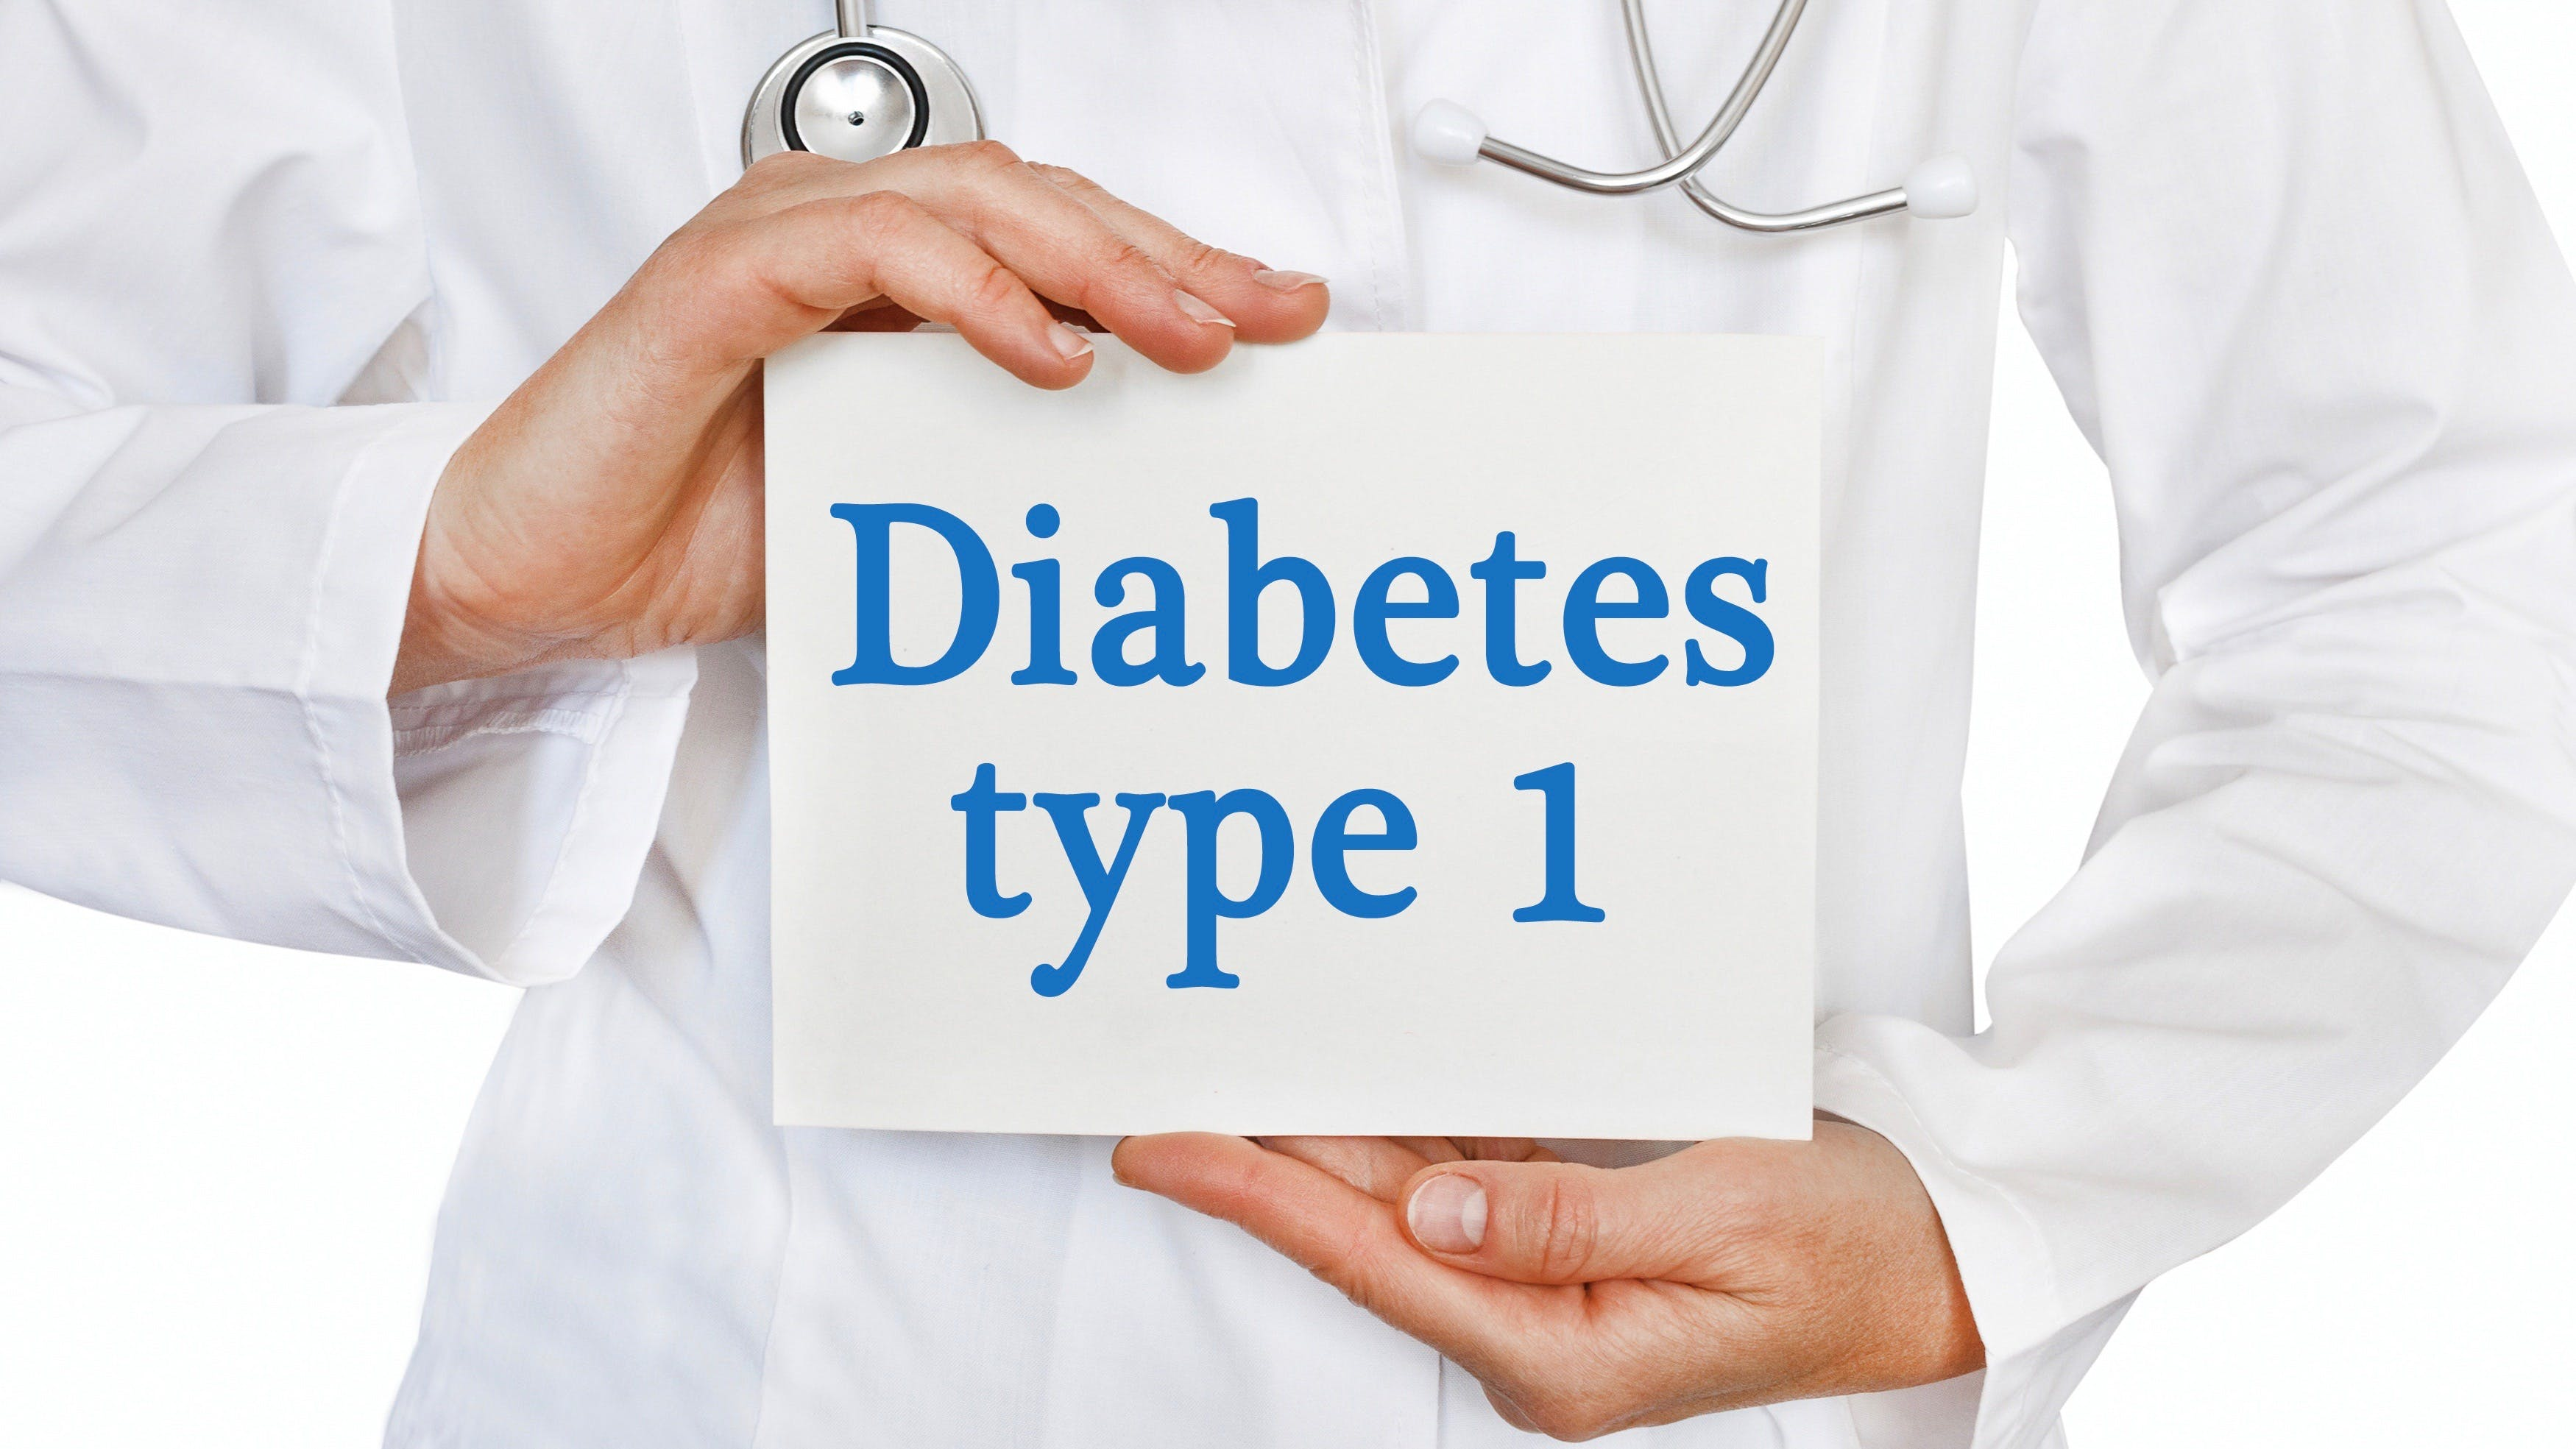 Diabetes Type 1 card in hands of Medical Doctor